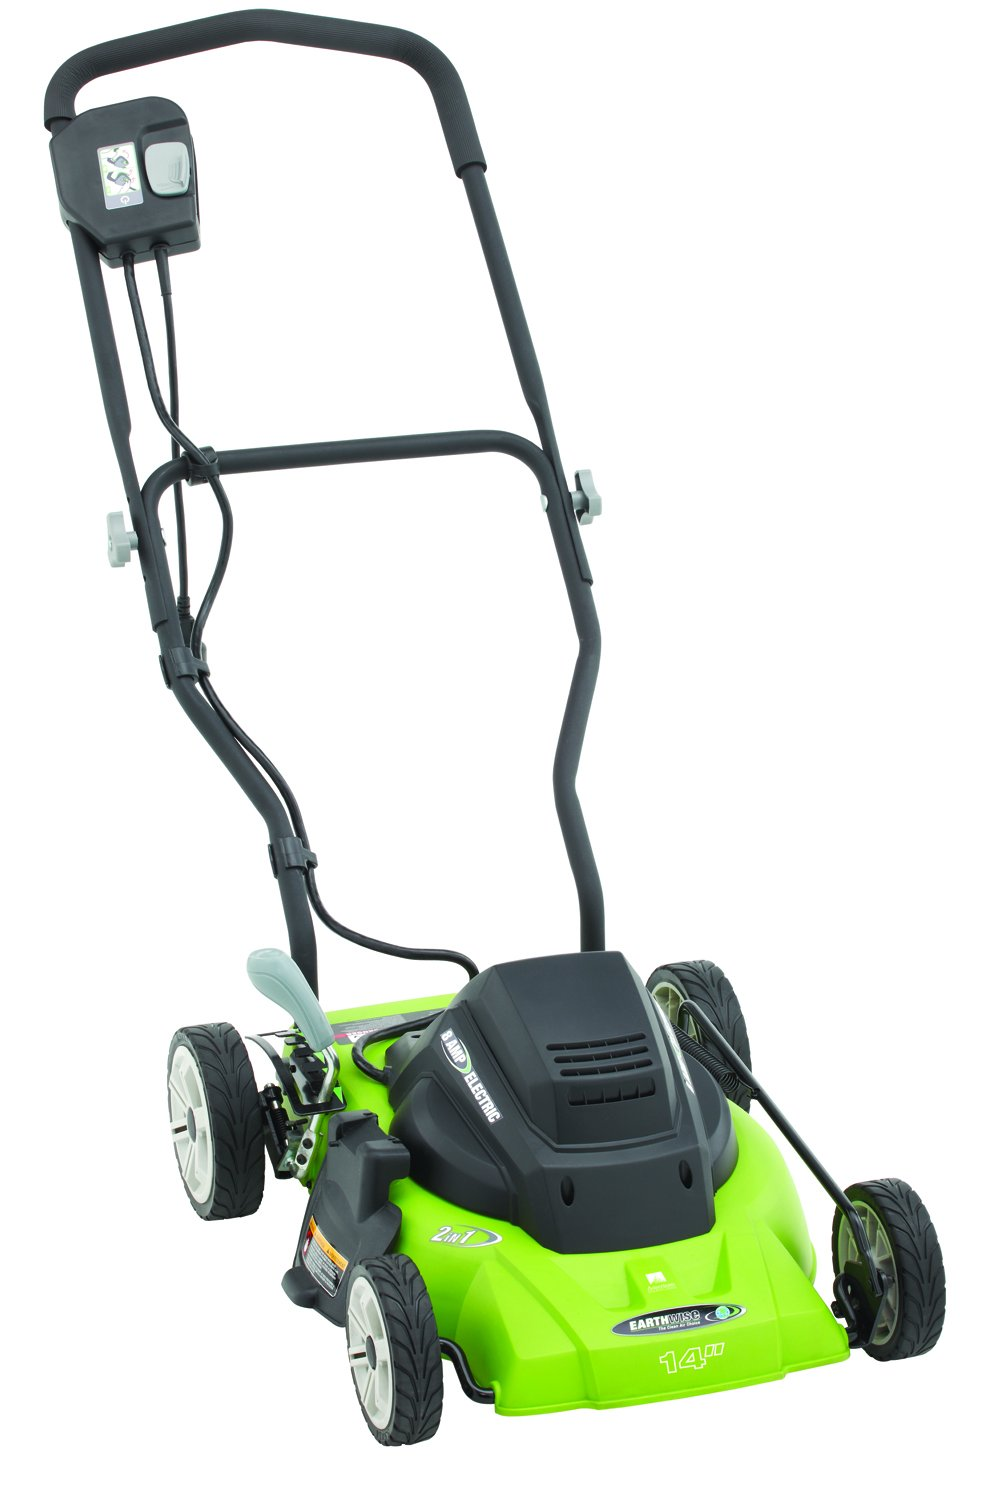 50214 Corded Mower By Earthwise